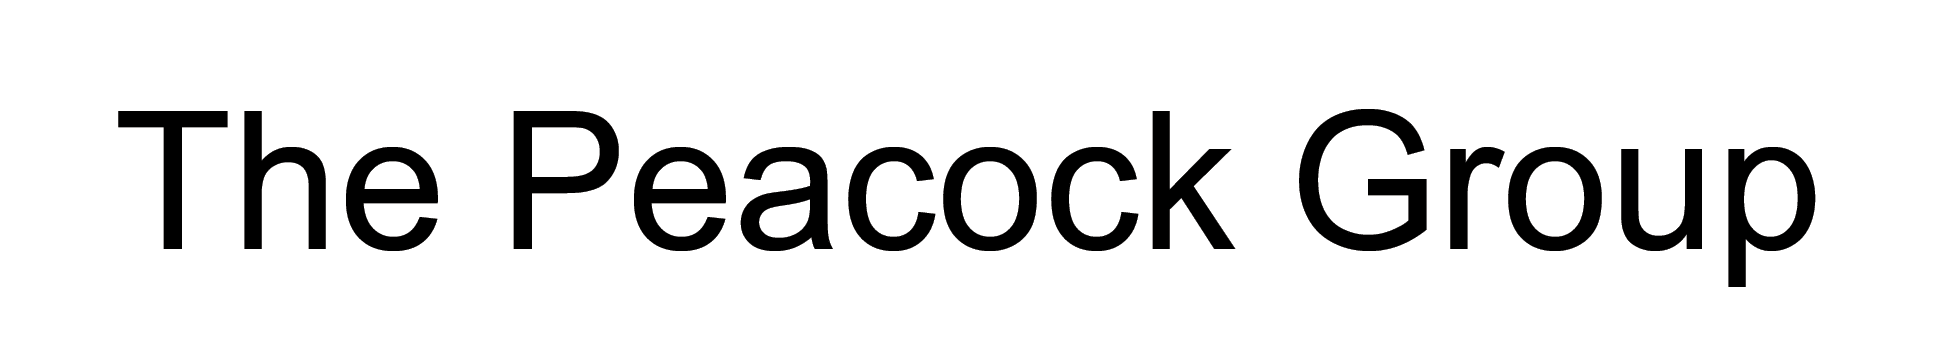 The Peacock Group logo